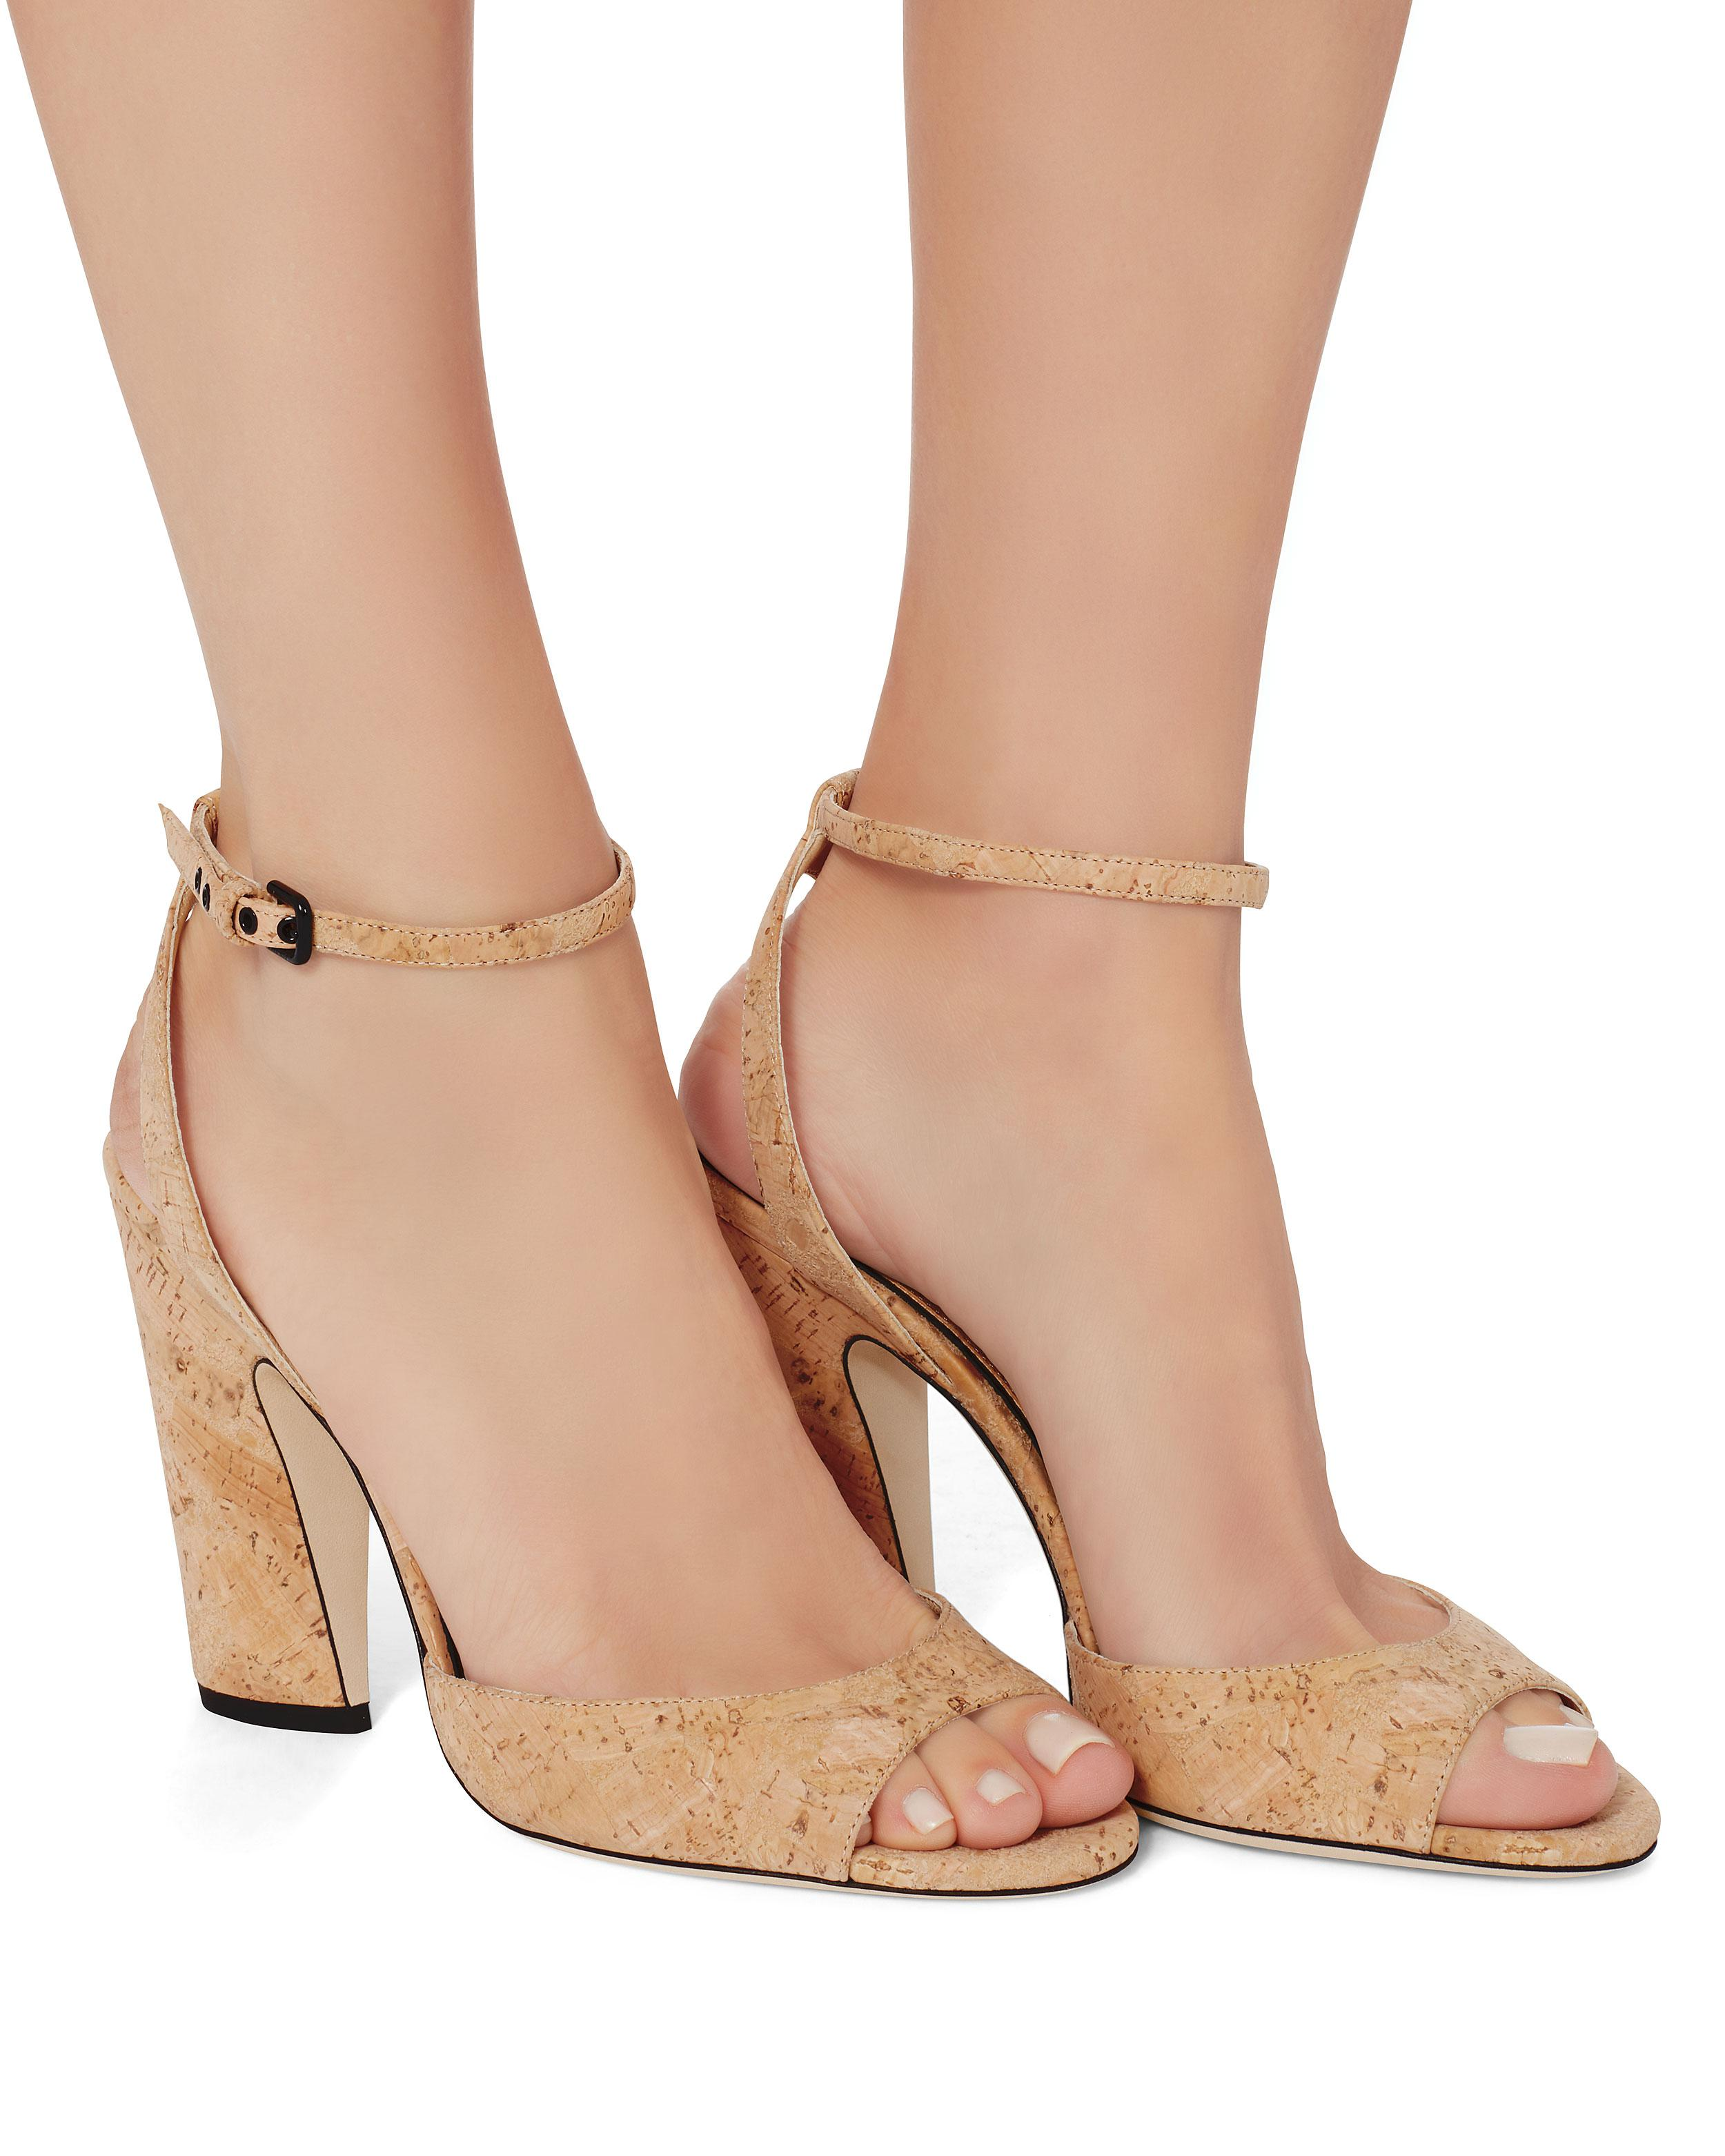 c512f06df732 Lyst - Jimmy Choo Miranda Cork Ankle Strap Heels in Natural